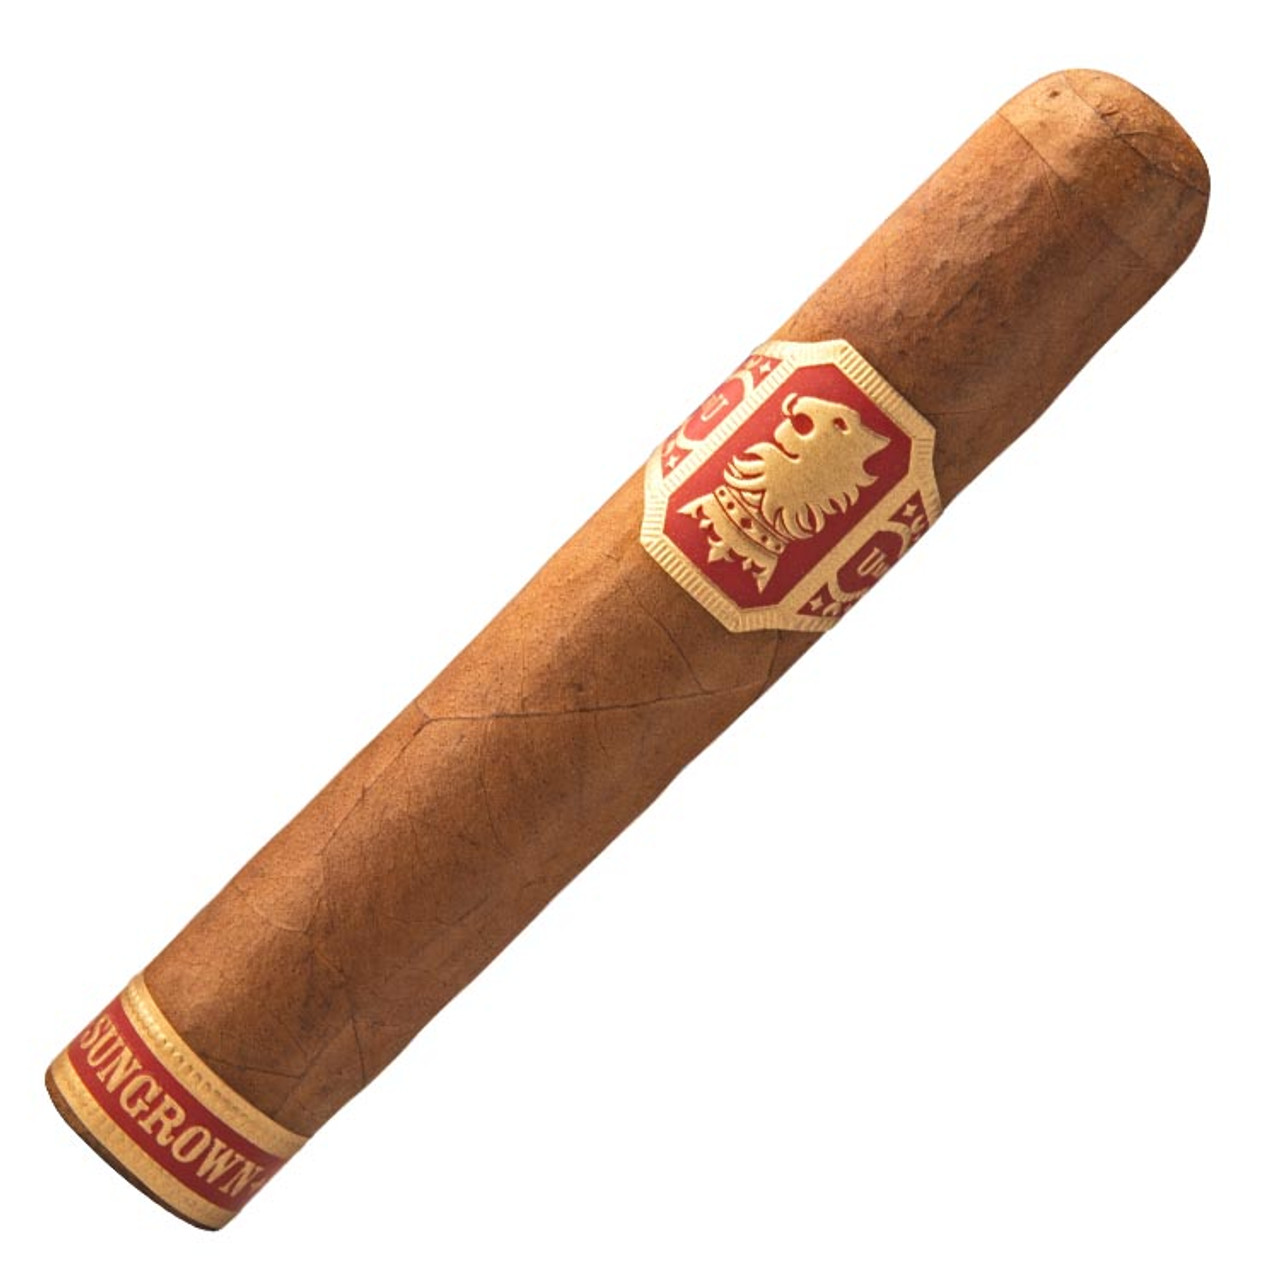 Undercrown Sungrown Robusto Cigars - 5 x 54 (Box of 25)